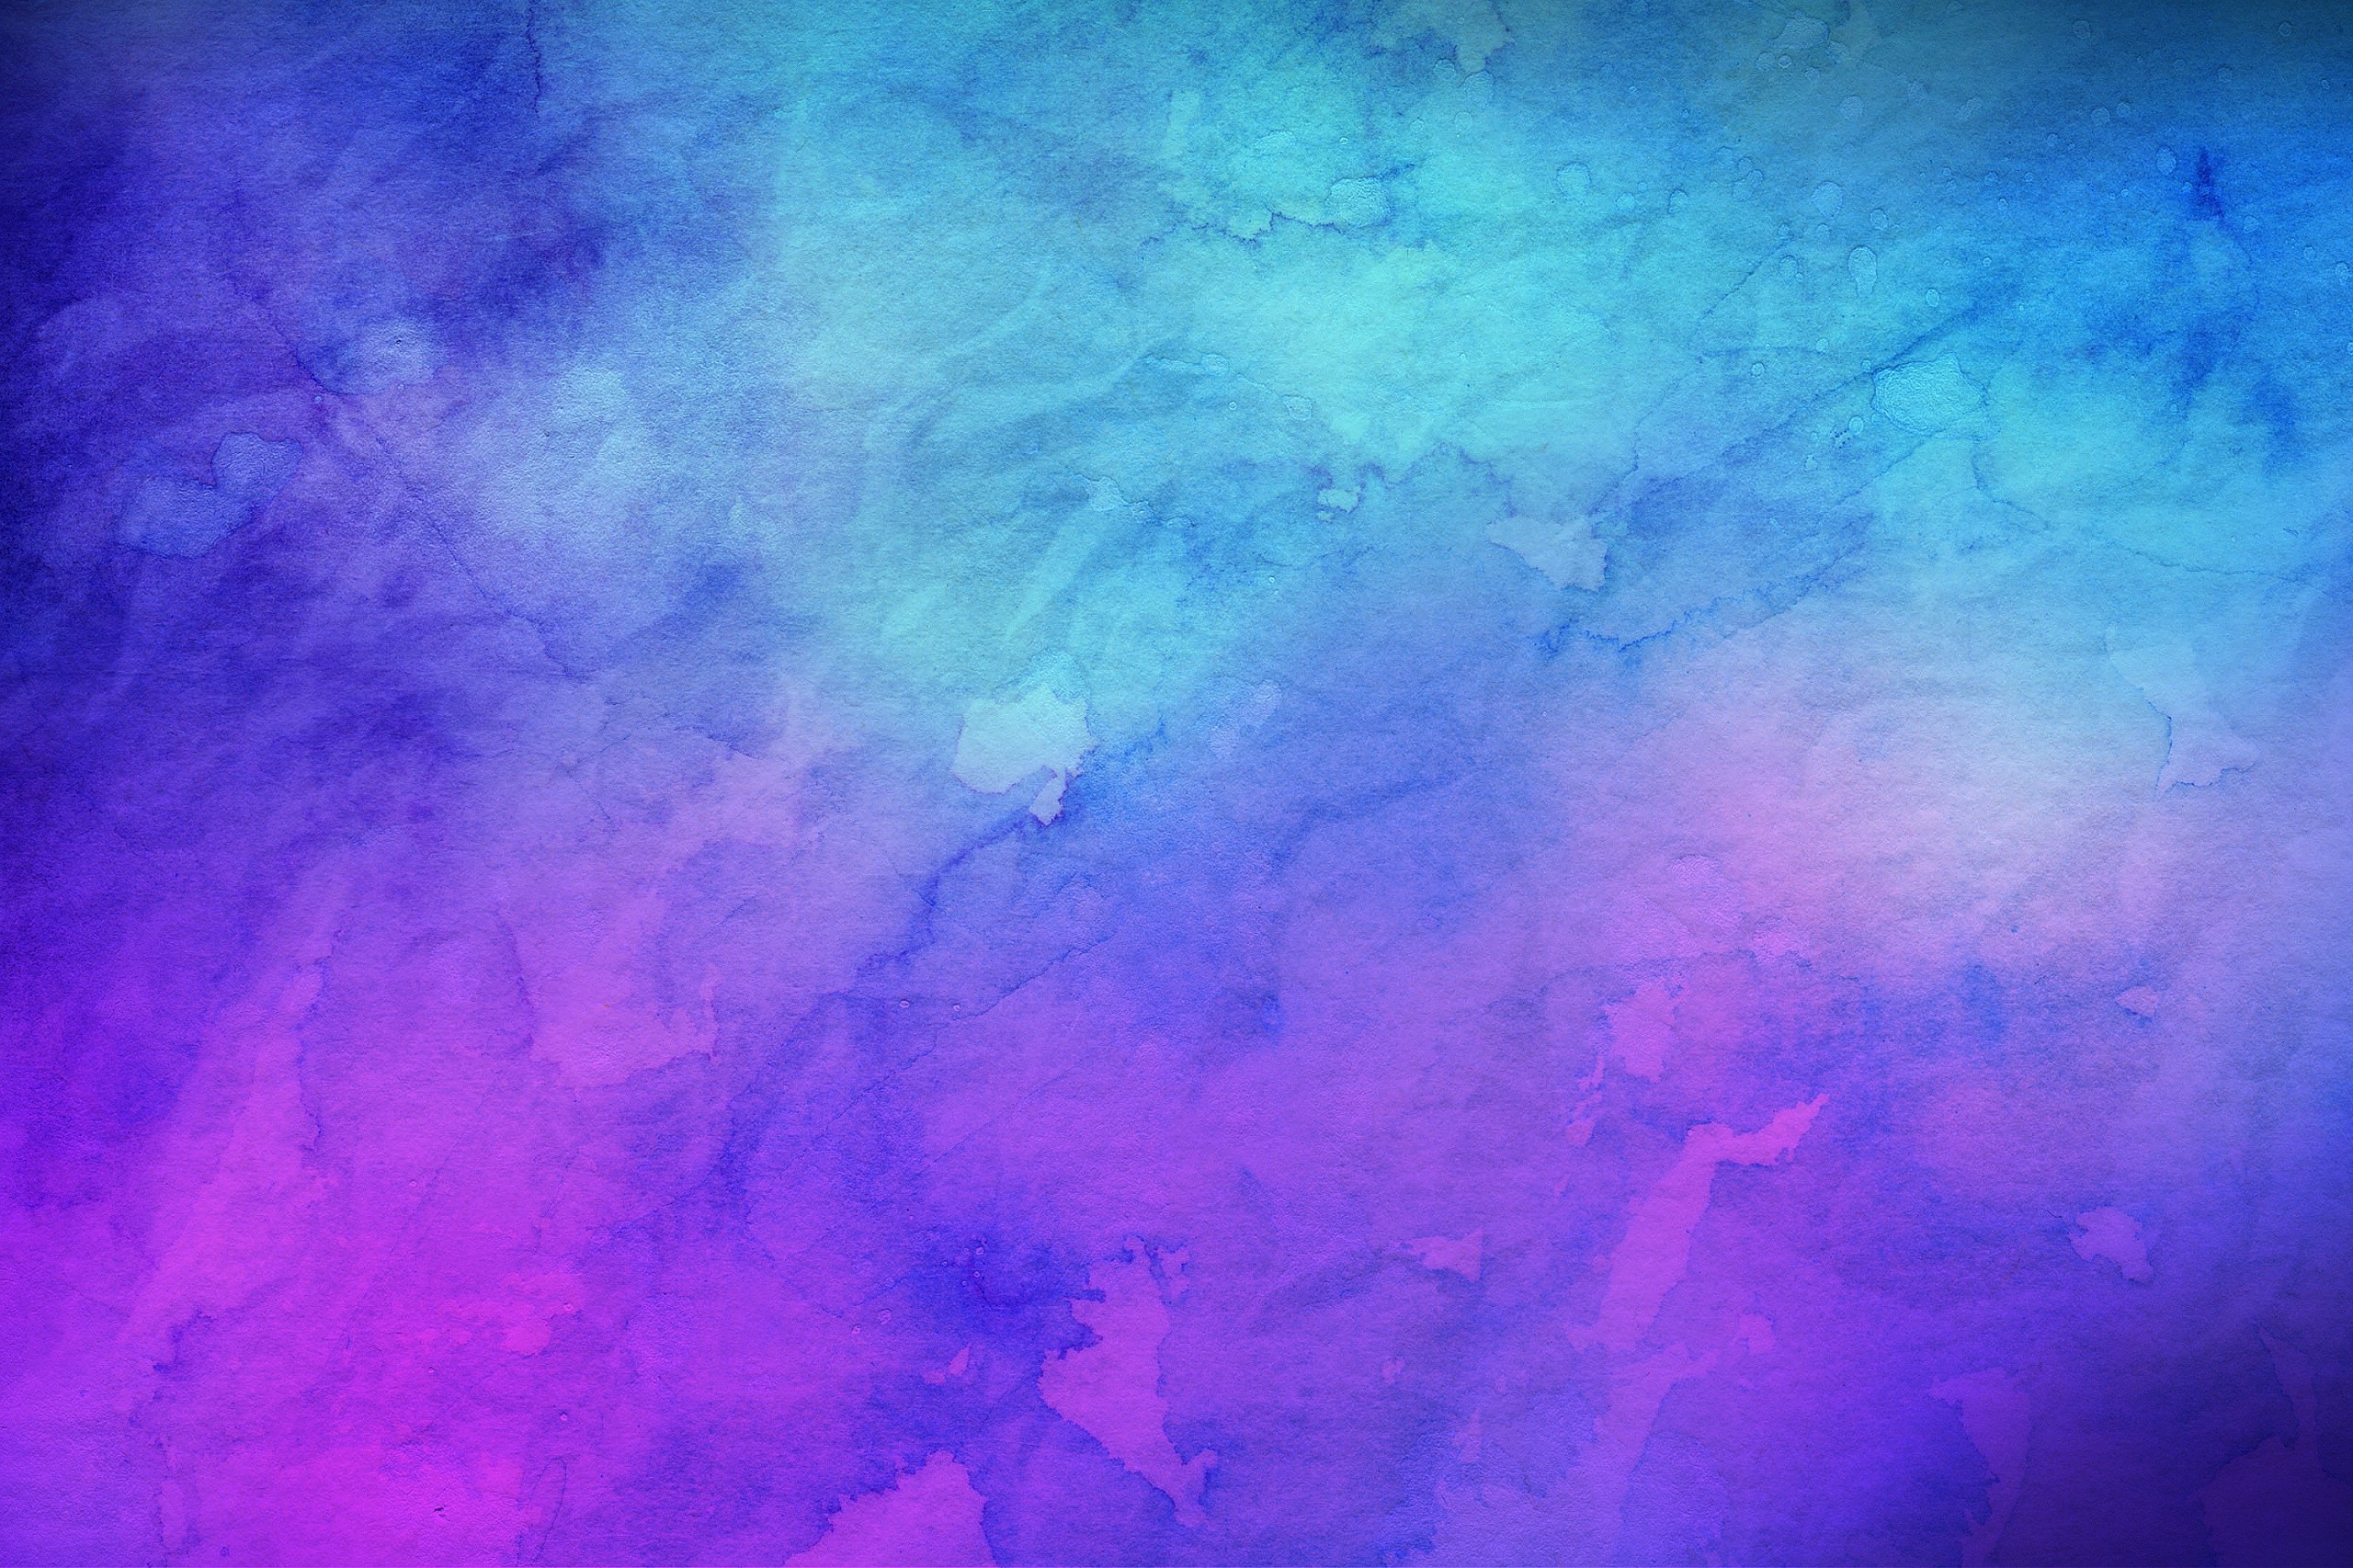 Water color background download free cool high for Cool watercolour